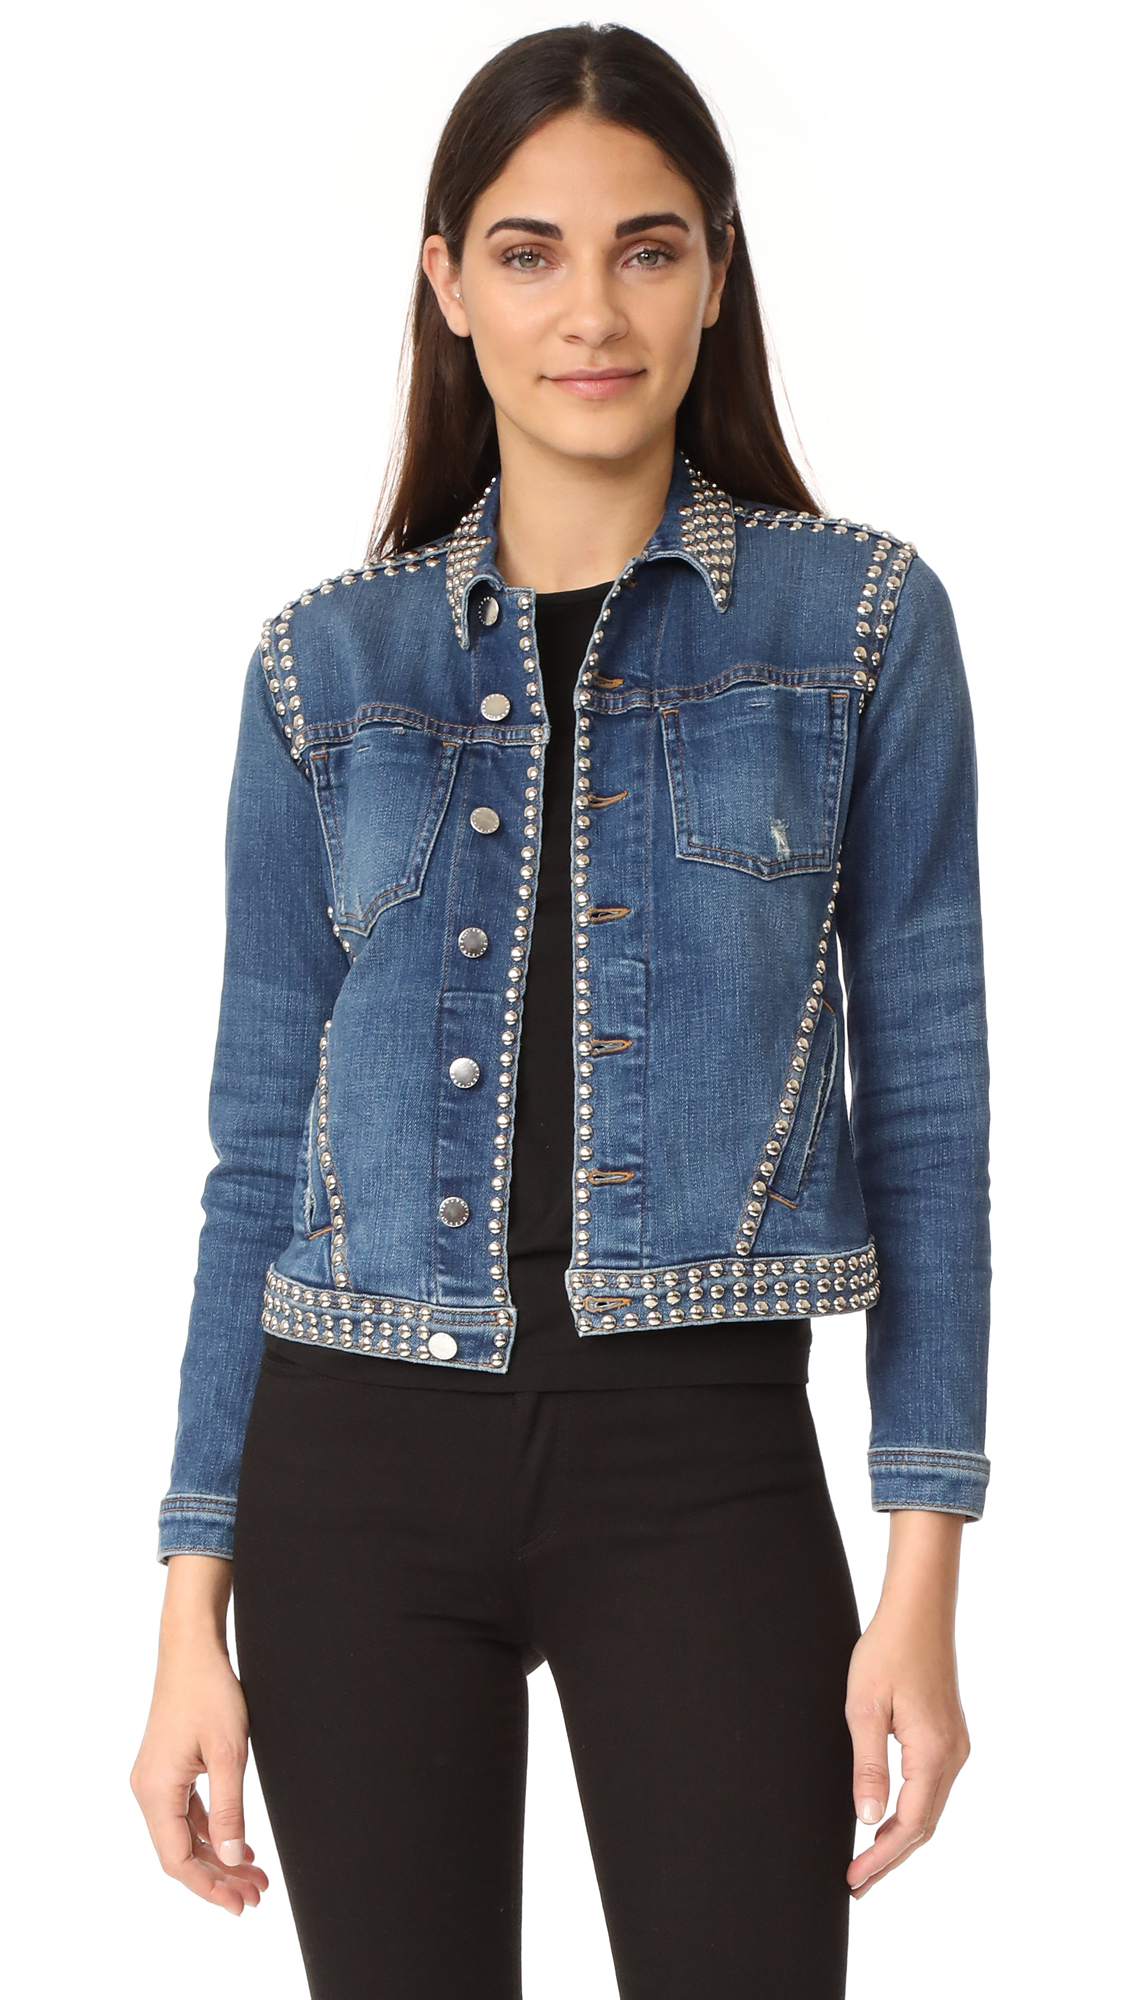 LAGENCE Celine Studded Jacket - Authentique